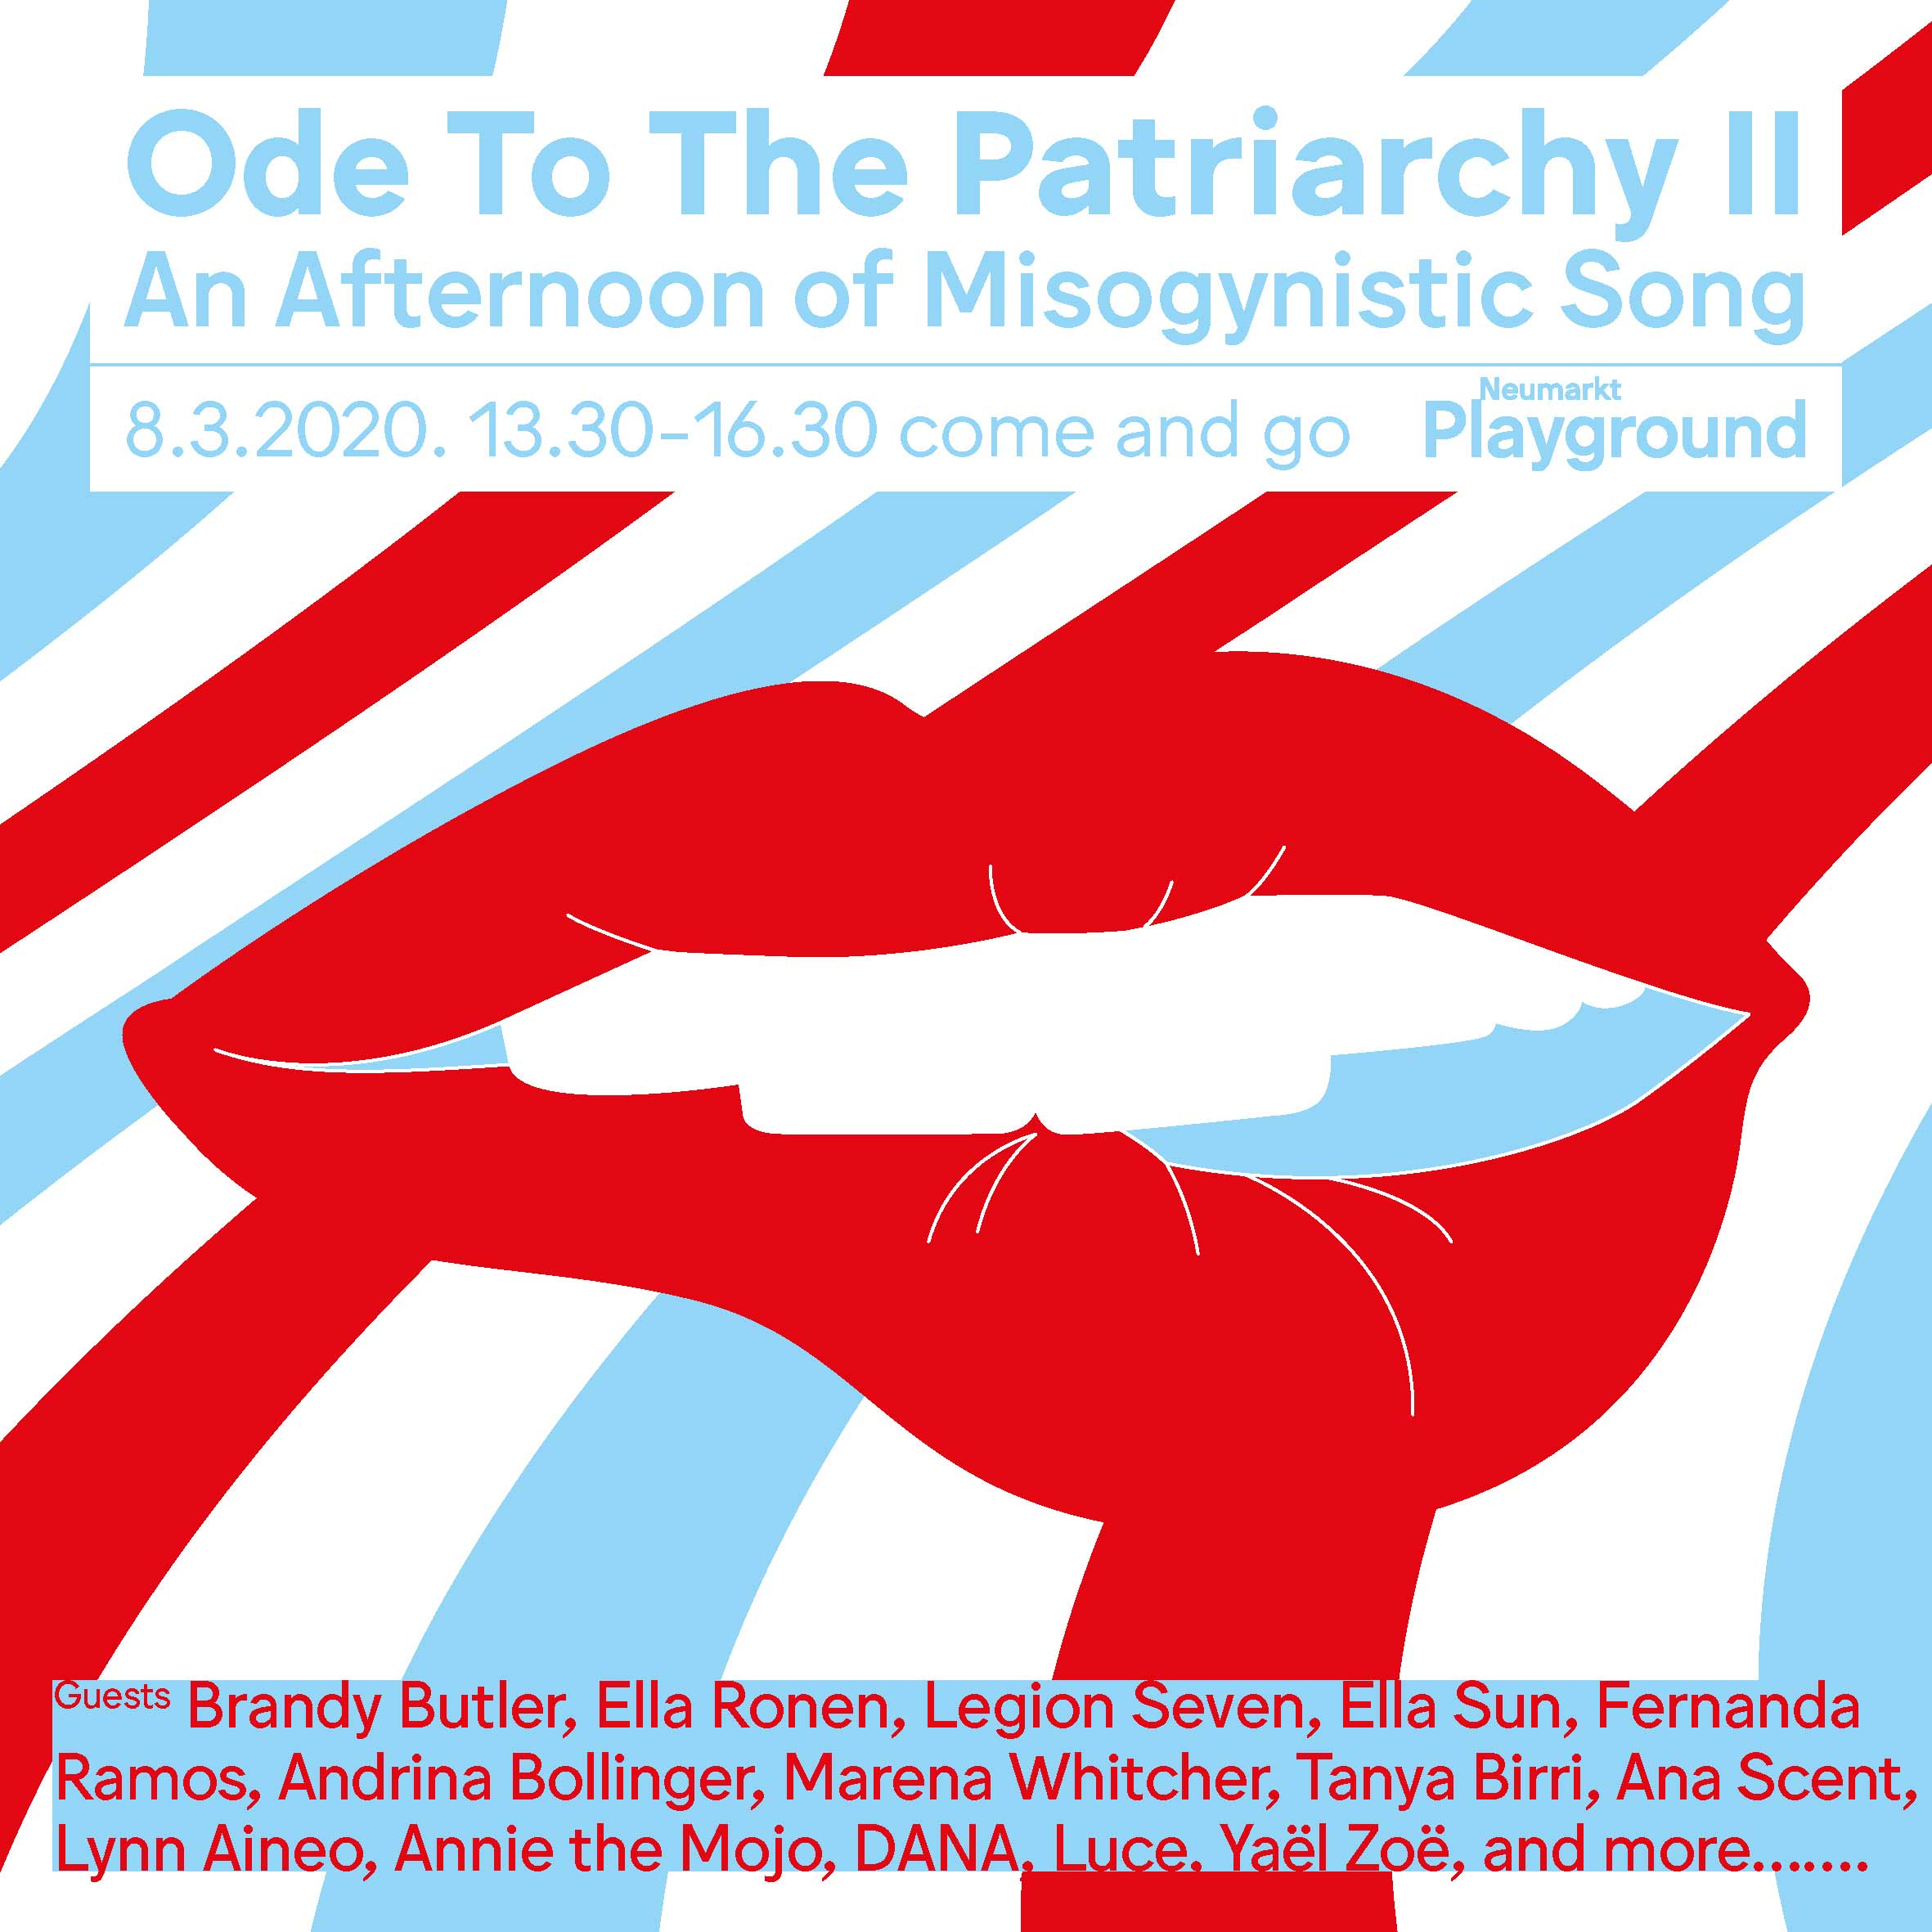 Ode To The Patriarchy II